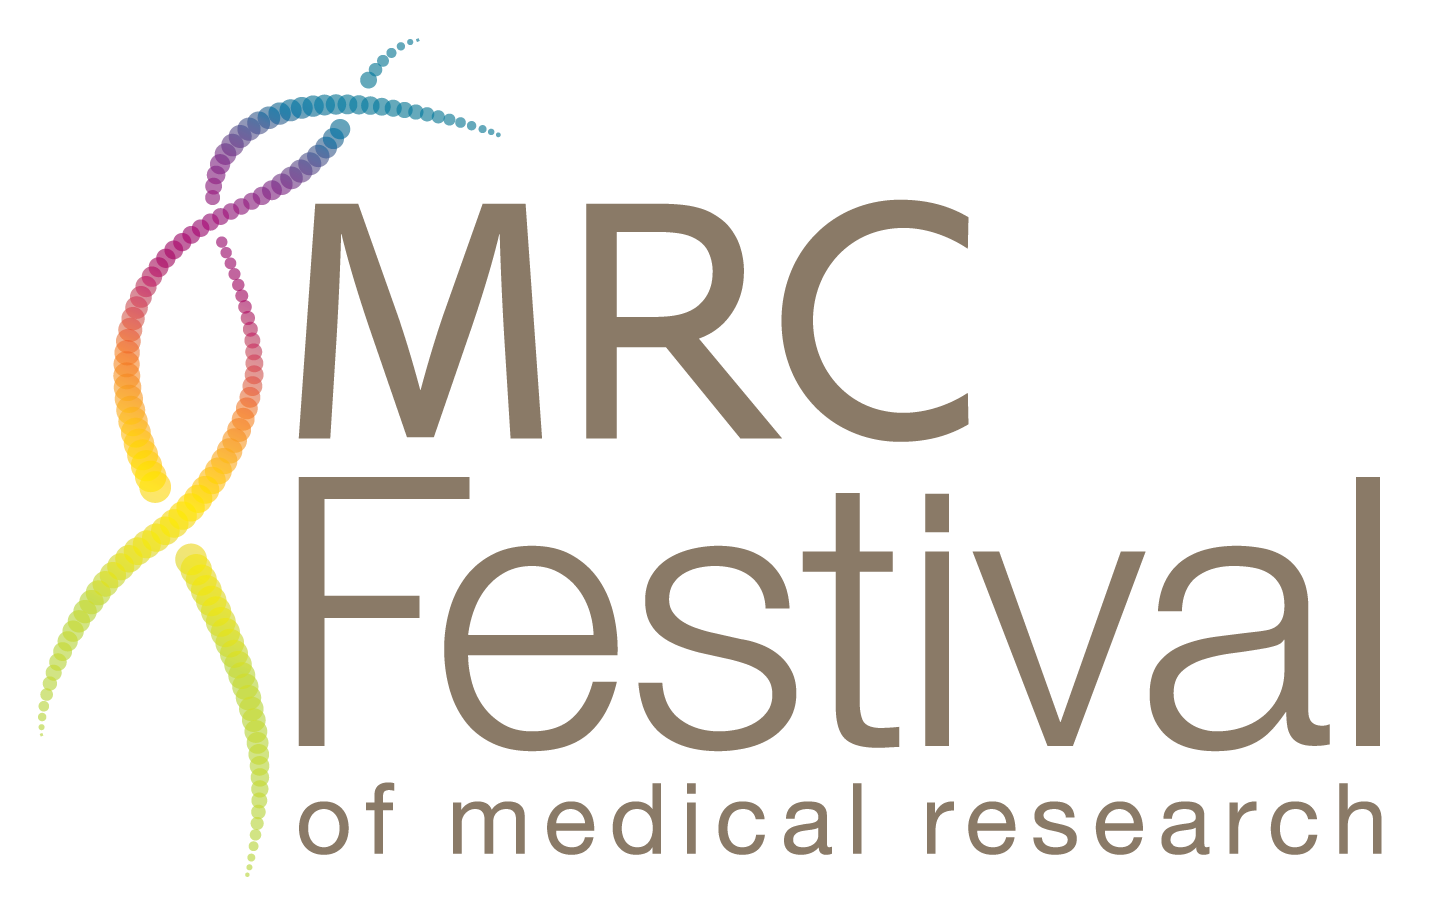 About the MRC Festival of Medical Research